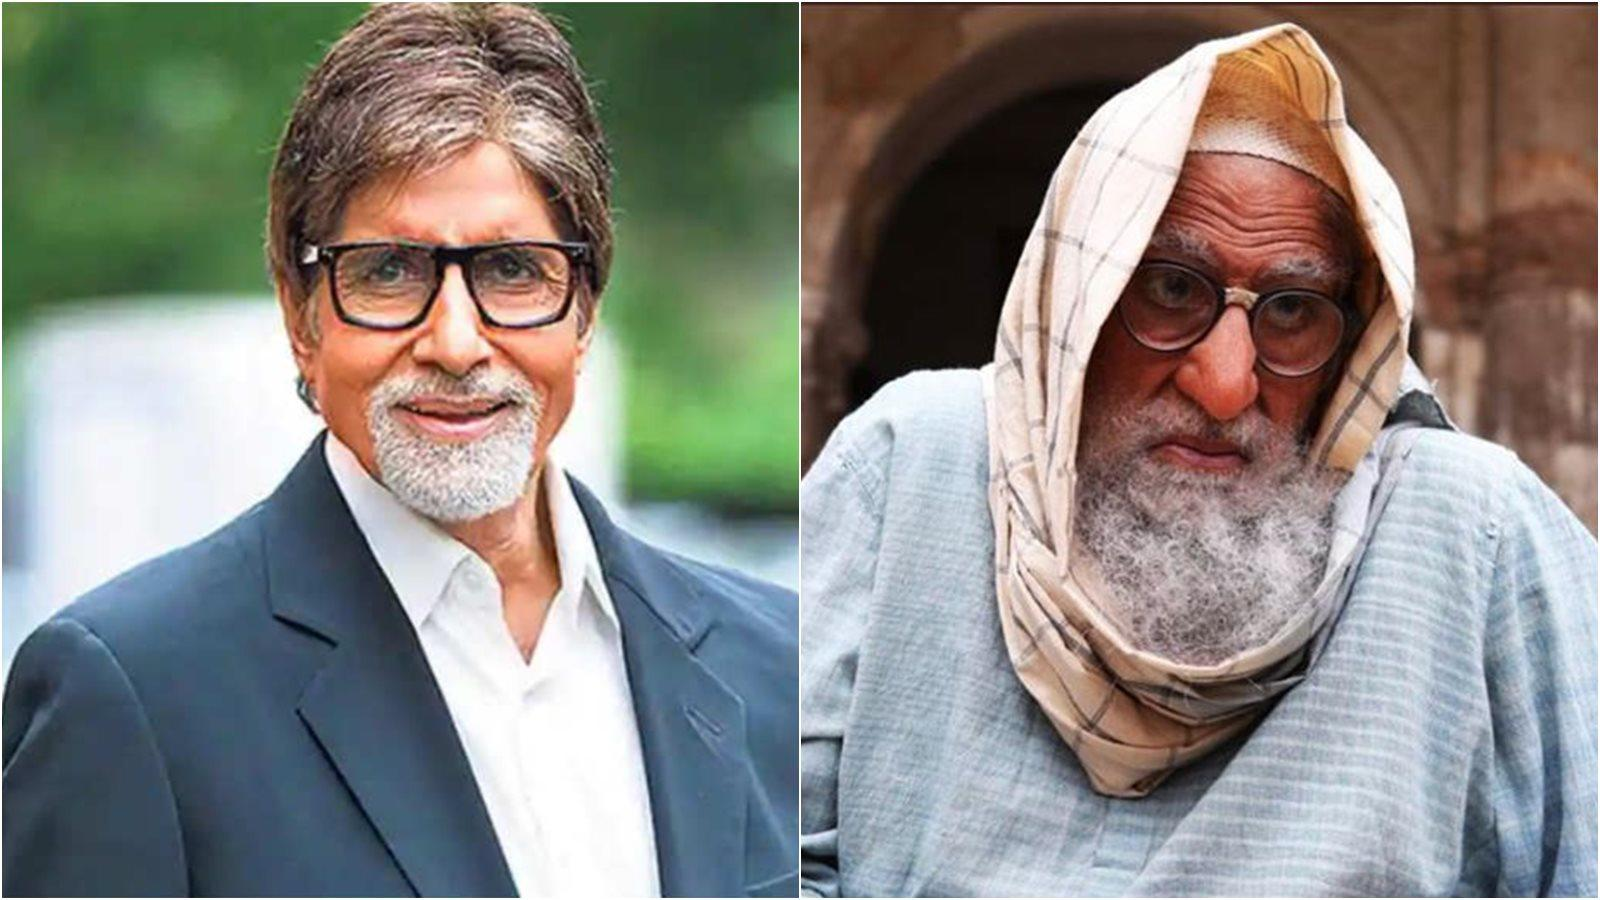 Amitabh Bachchan's offbeat first look from 'Gulabo Sitabo' revealed